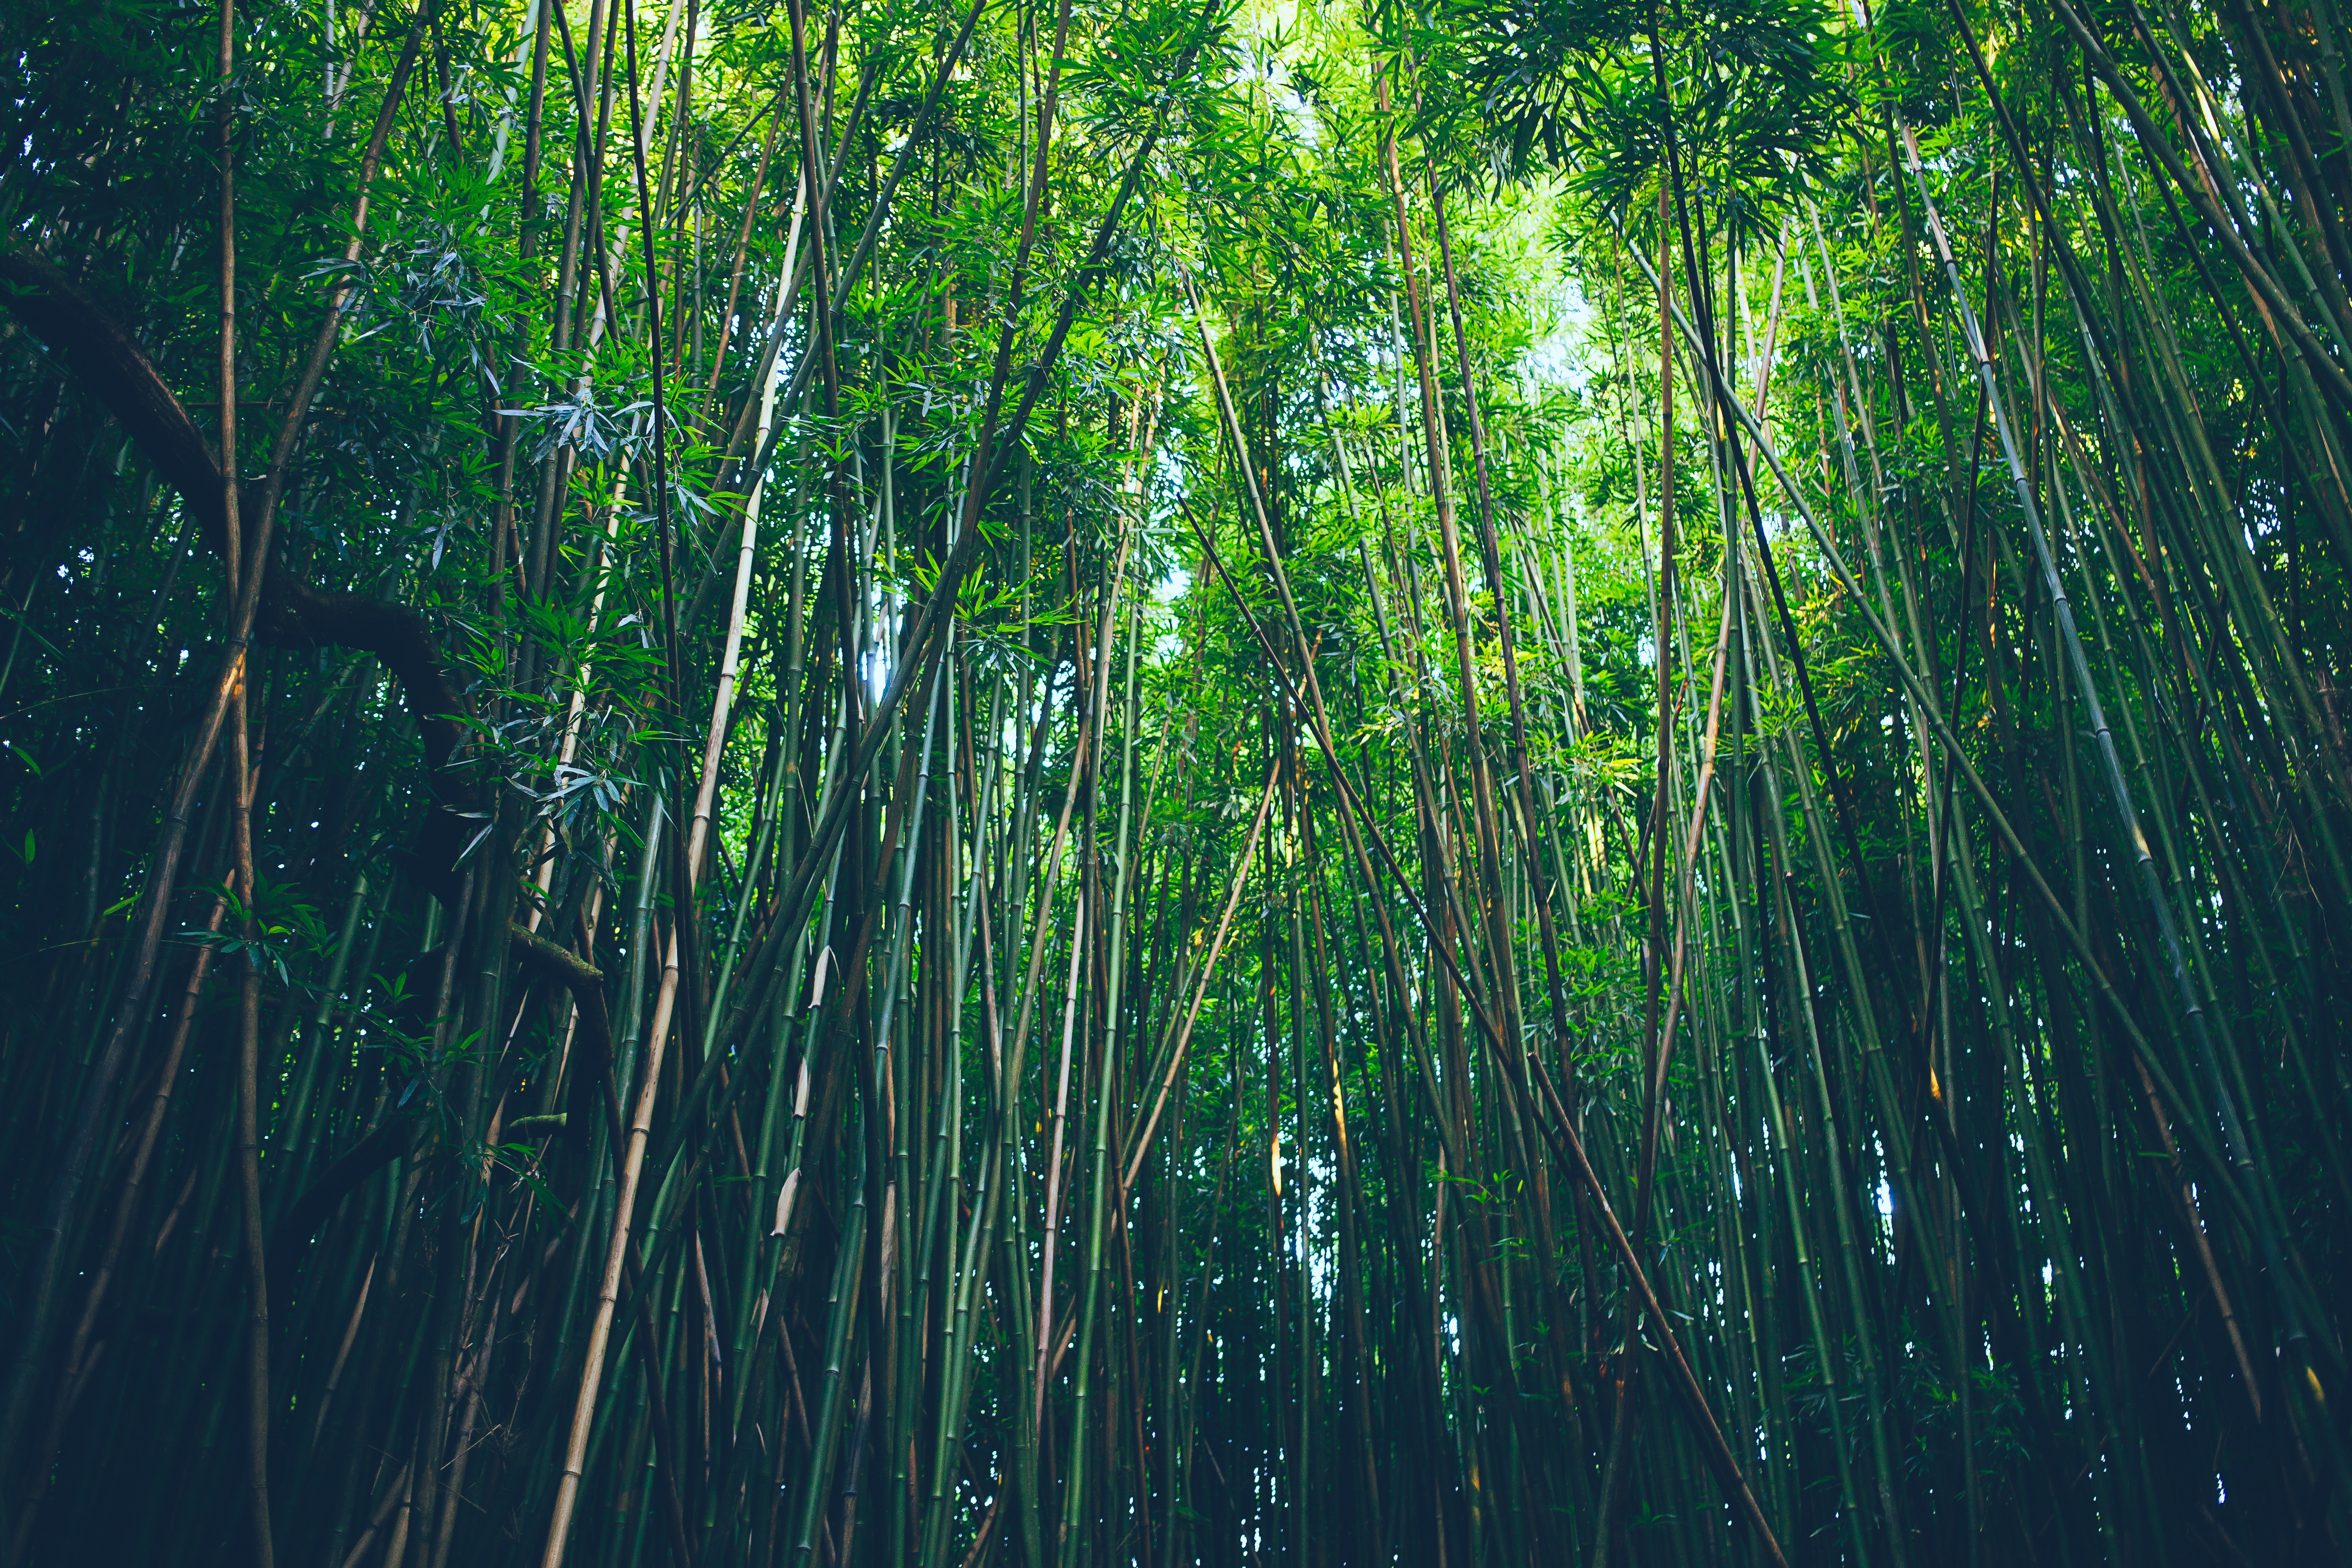 131279 download wallpaper Nature, Bamboo, Trees, Thickets, Thicket screensavers and pictures for free